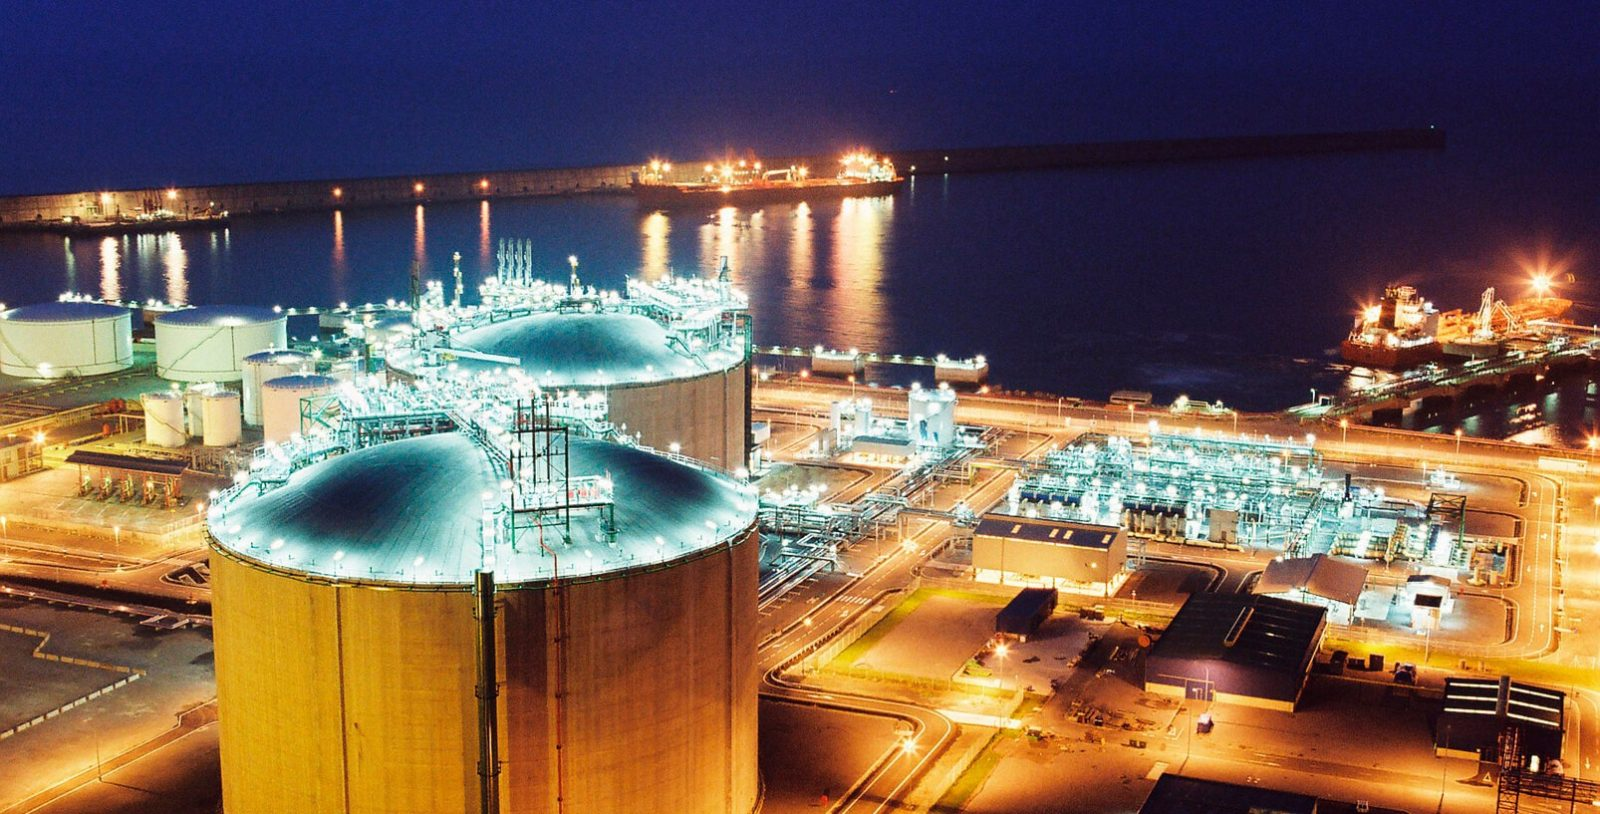 Heat_Recovery_Boiler_Plant_CFD_Energy_Spain_IDOM__1_